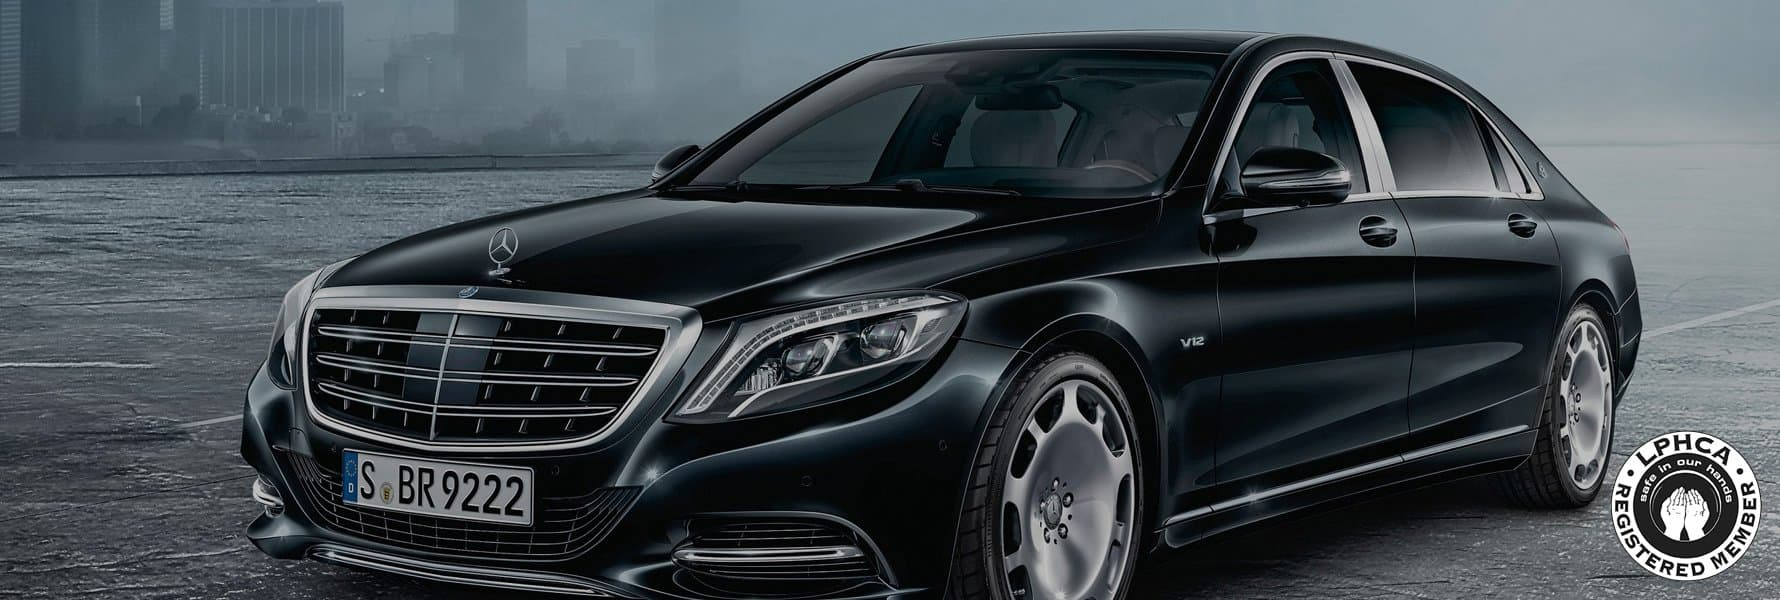 LUXURY CHAUFFEUR CAR SERVICE IN LONDON